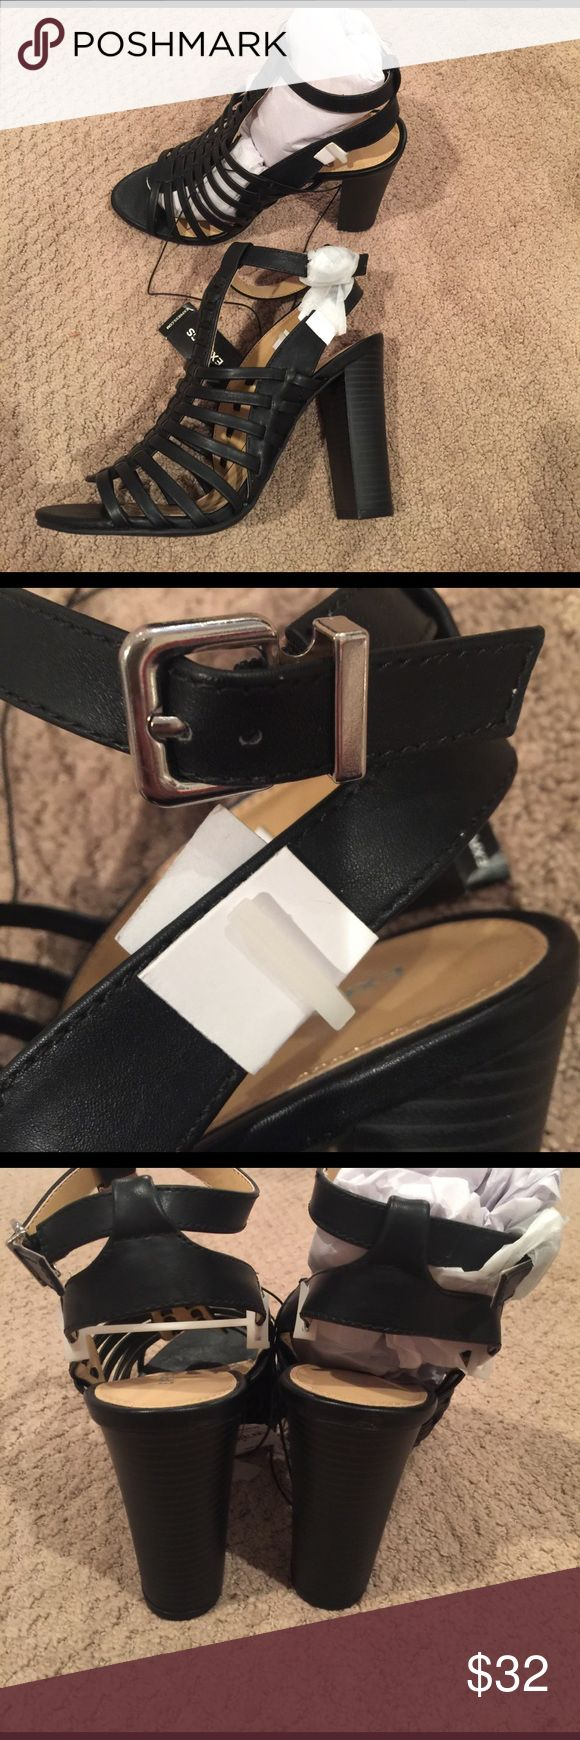 "NWT Express black stacked heel caged sandal Never worn.  Purchased wrong size. Approx 4.5"" heel. Ship immediately. Purchased MARCH 2017 Express Shoes Heels"